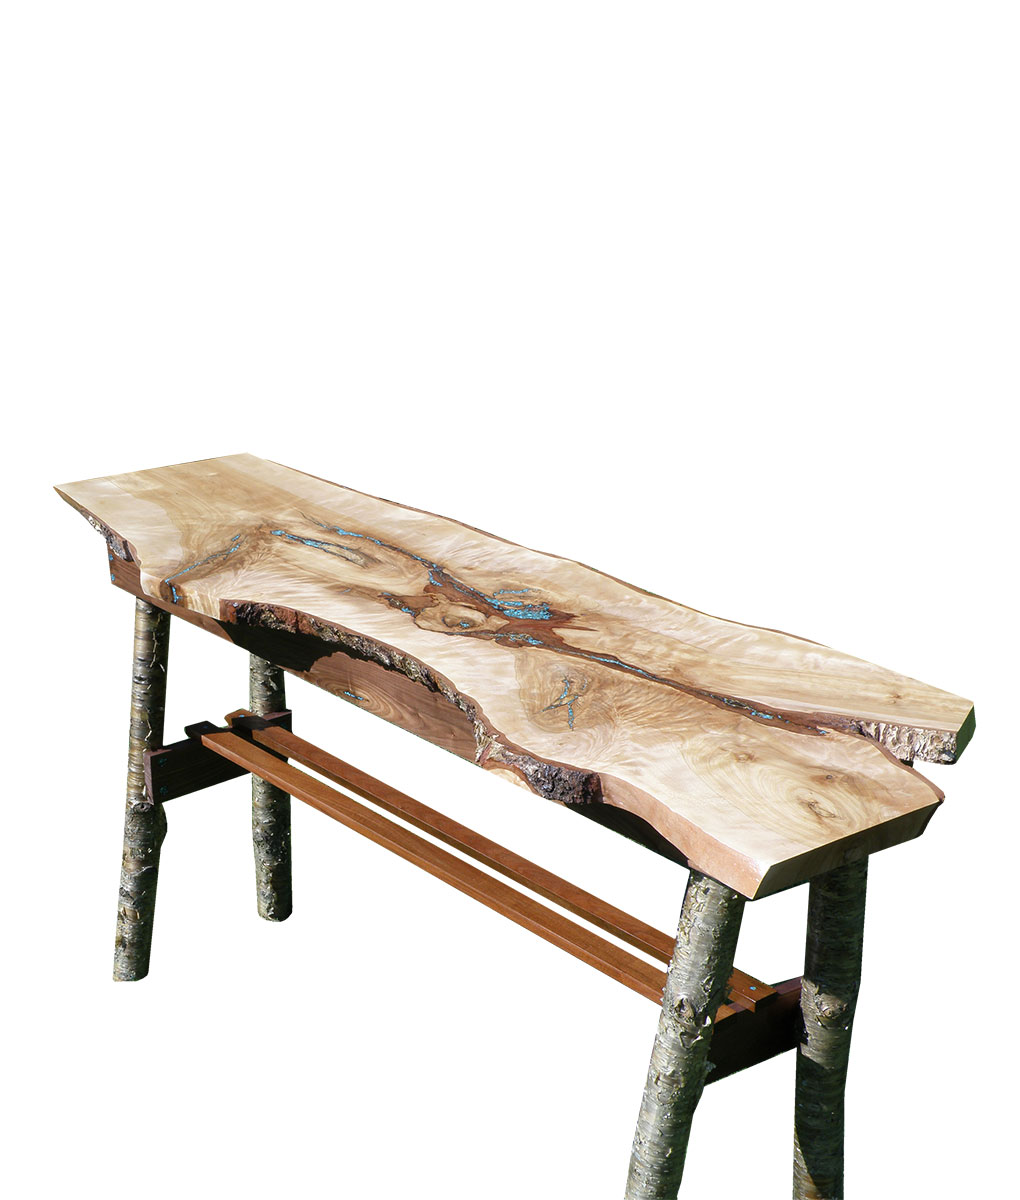 Rustic Hall Or Sofa Table With Inlaid Turquoise | Rustic Furniture And  Decor From RusticArtistry.